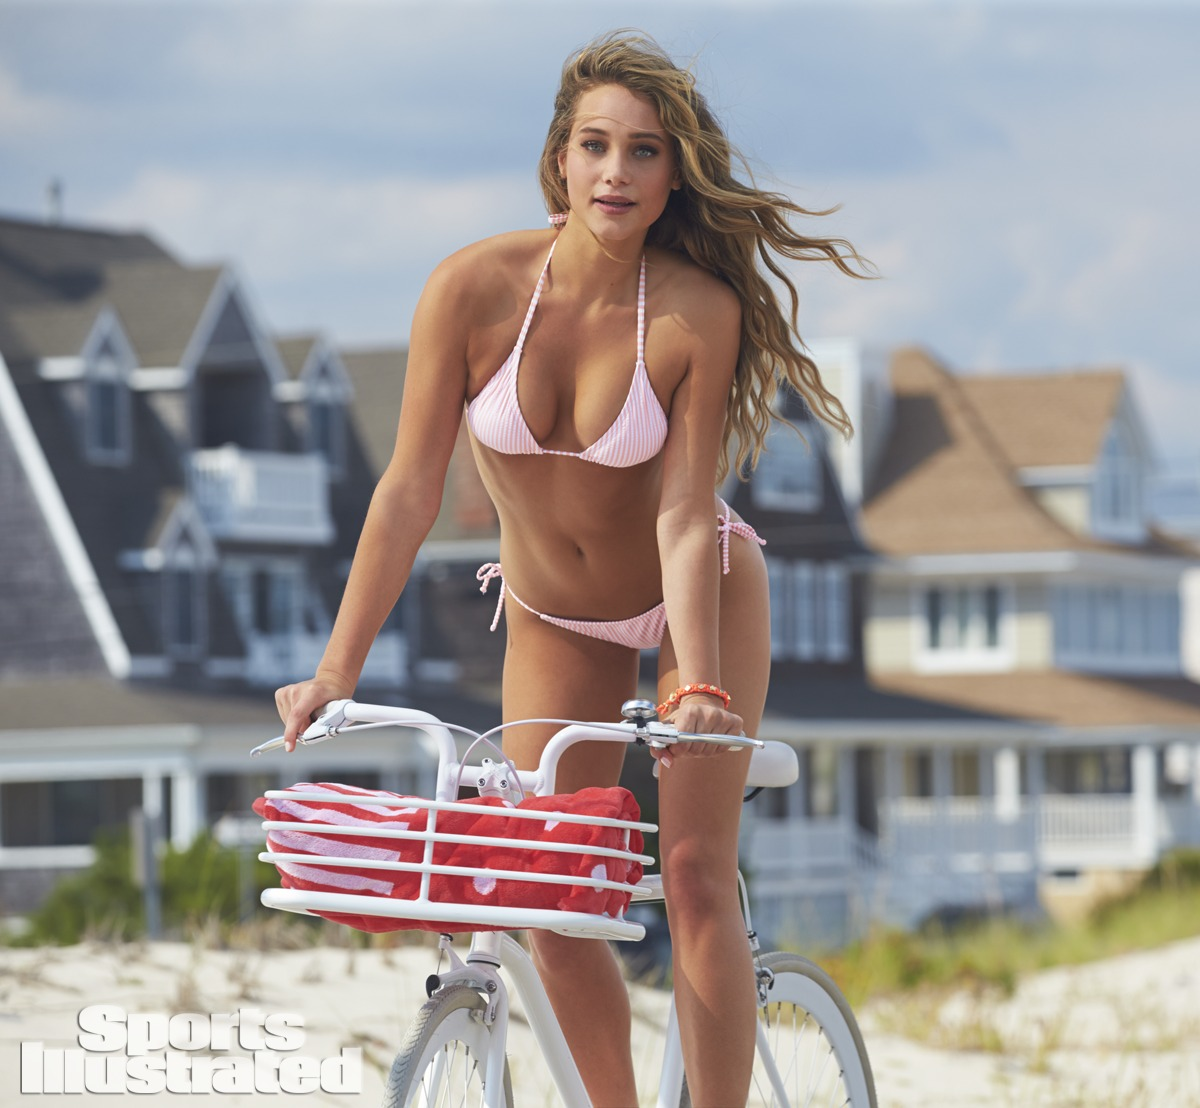 Hannah Davis was photographed by Ben Watts at the Jersey Shore. Swimsuit by Swimsuit by 2Chillies Swimwear.